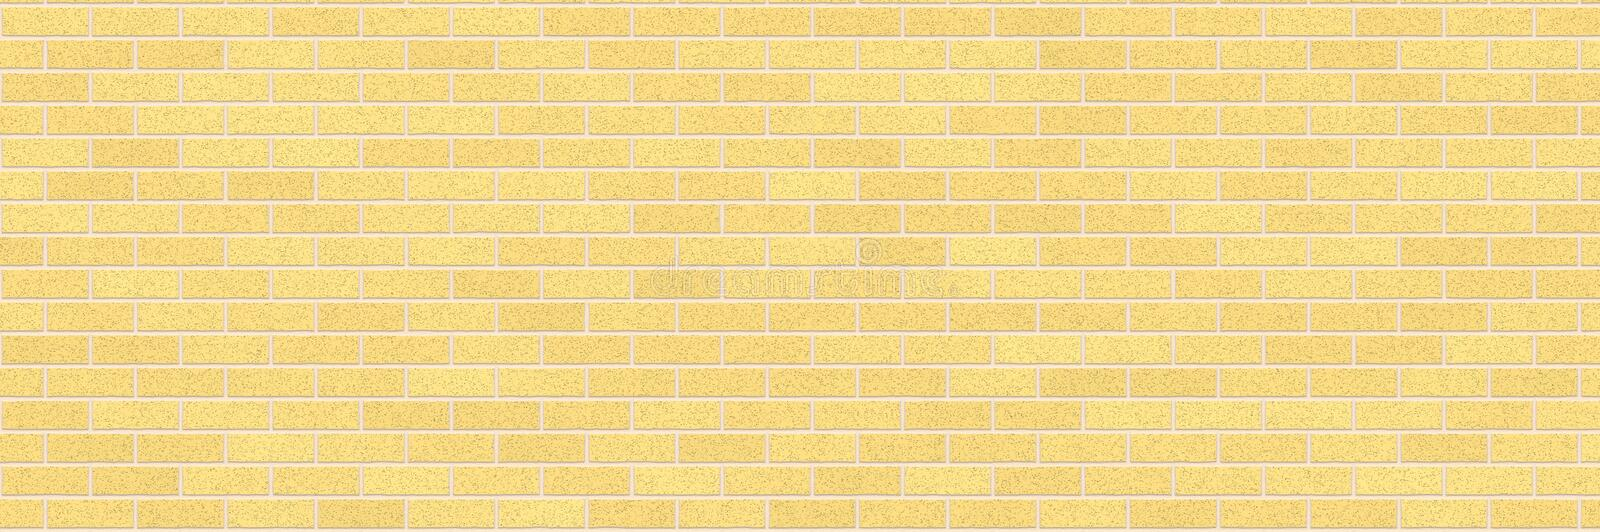 Yellow brick wall abstract background. Texture of bricks. Decorative stone. Realistic wide illustration. Template design for web banners royalty free illustration